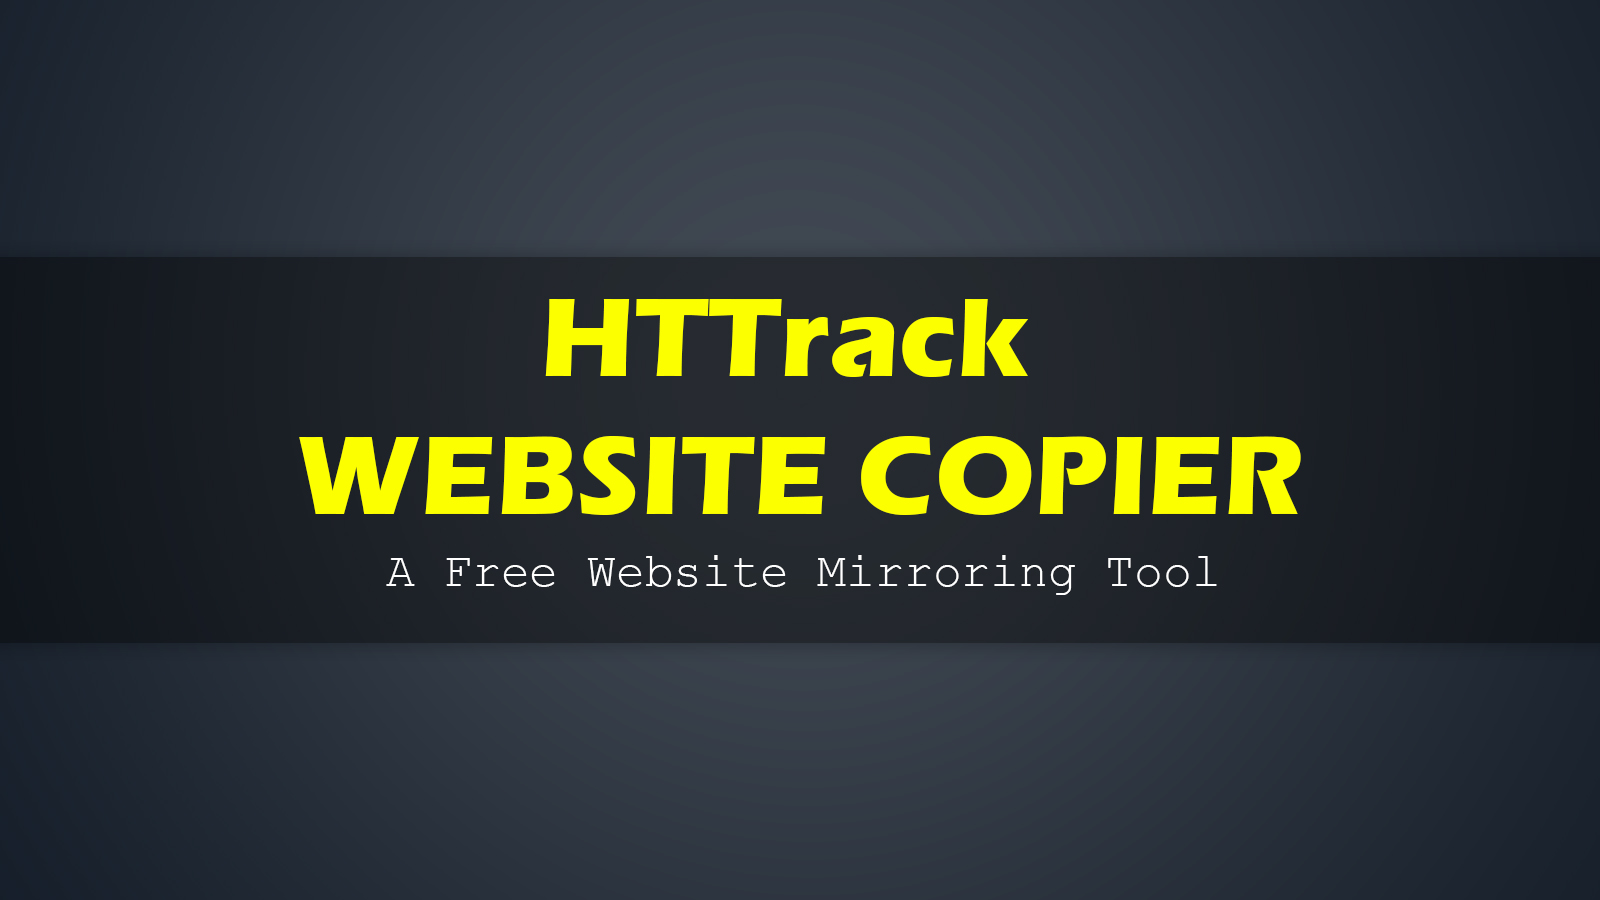 HTTrack Website Copier - A Free Website Mirroring Tool